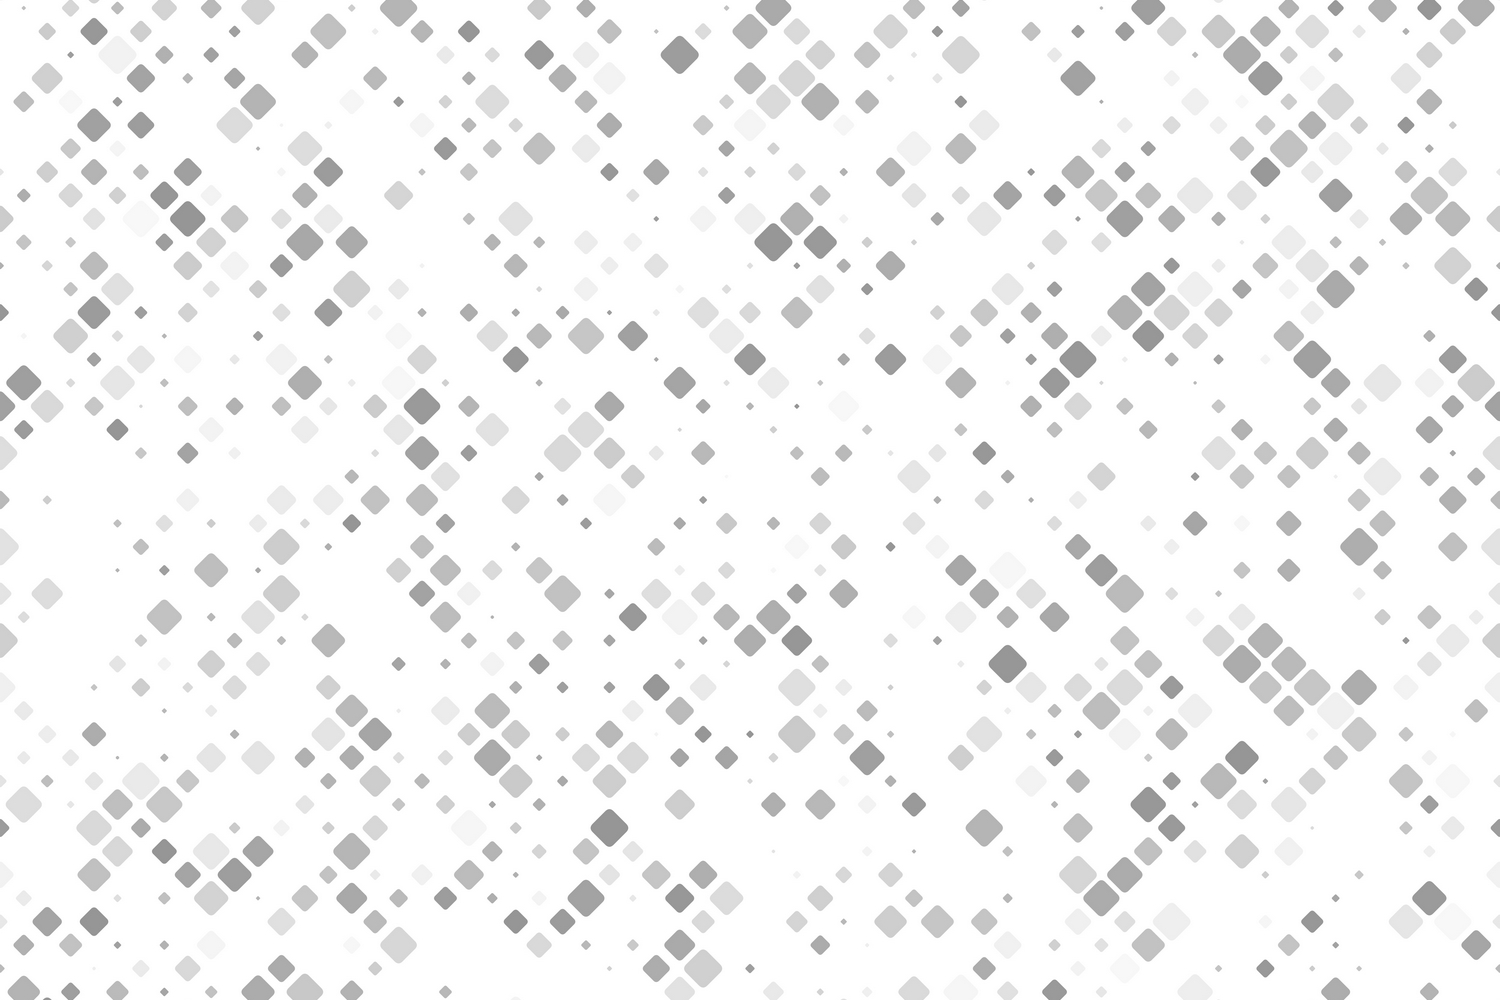 16 Seamless Square Backgrounds AI, EPS, JPG 5000x5000 example image 6